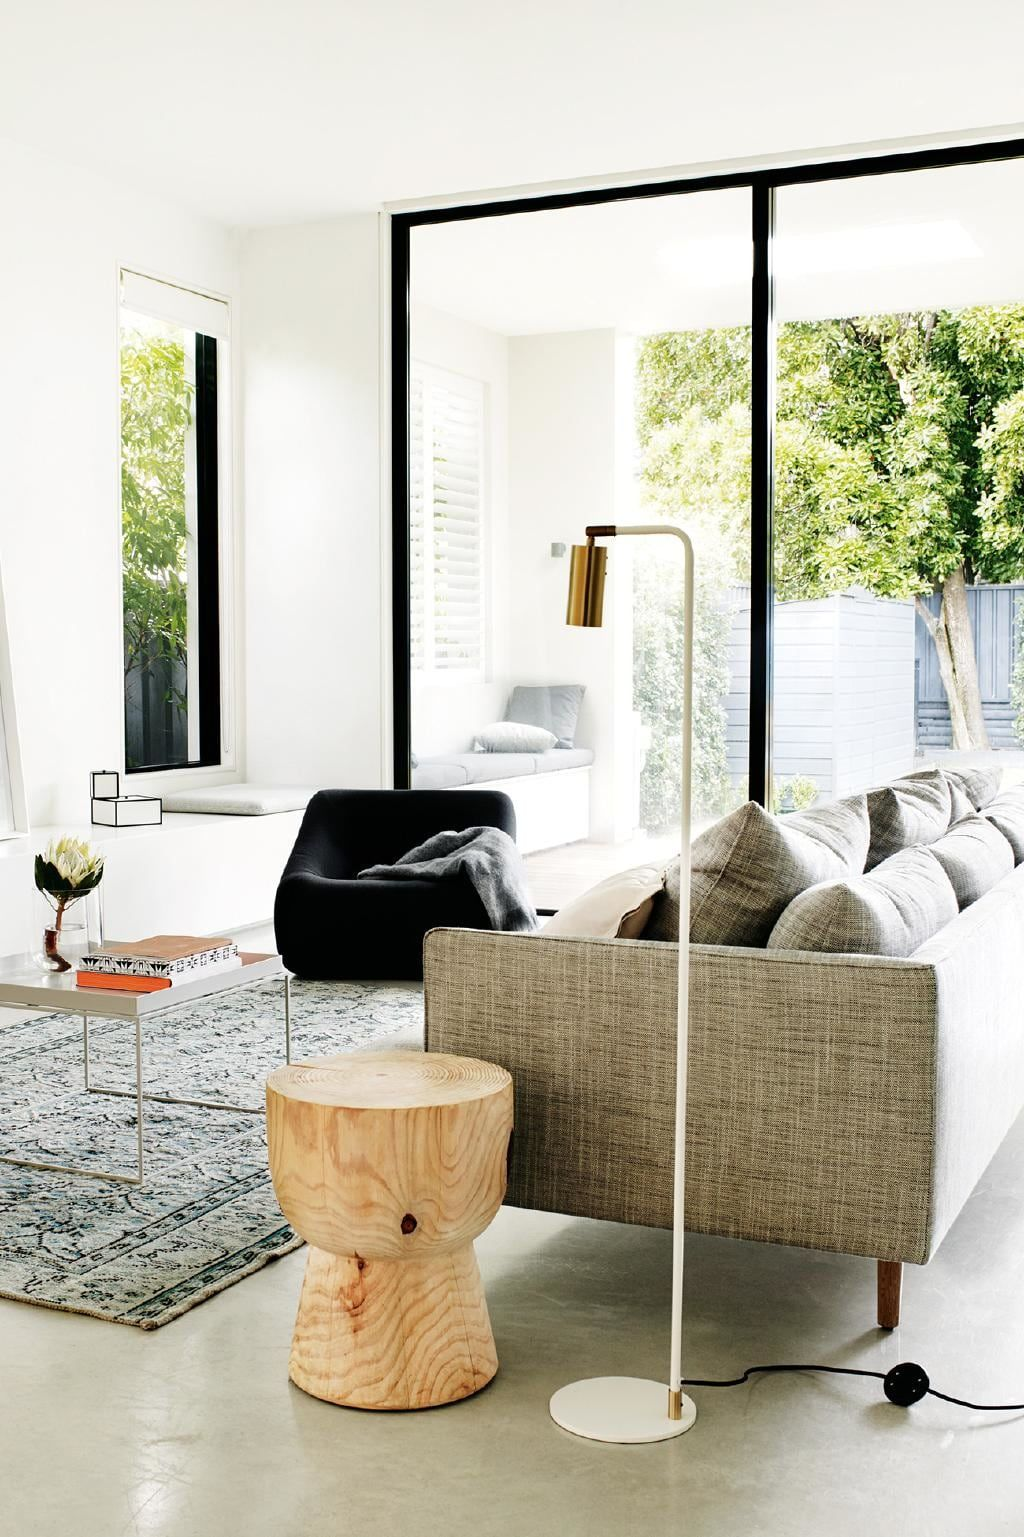 9 creative living rooms to inspire your own home renovation ...